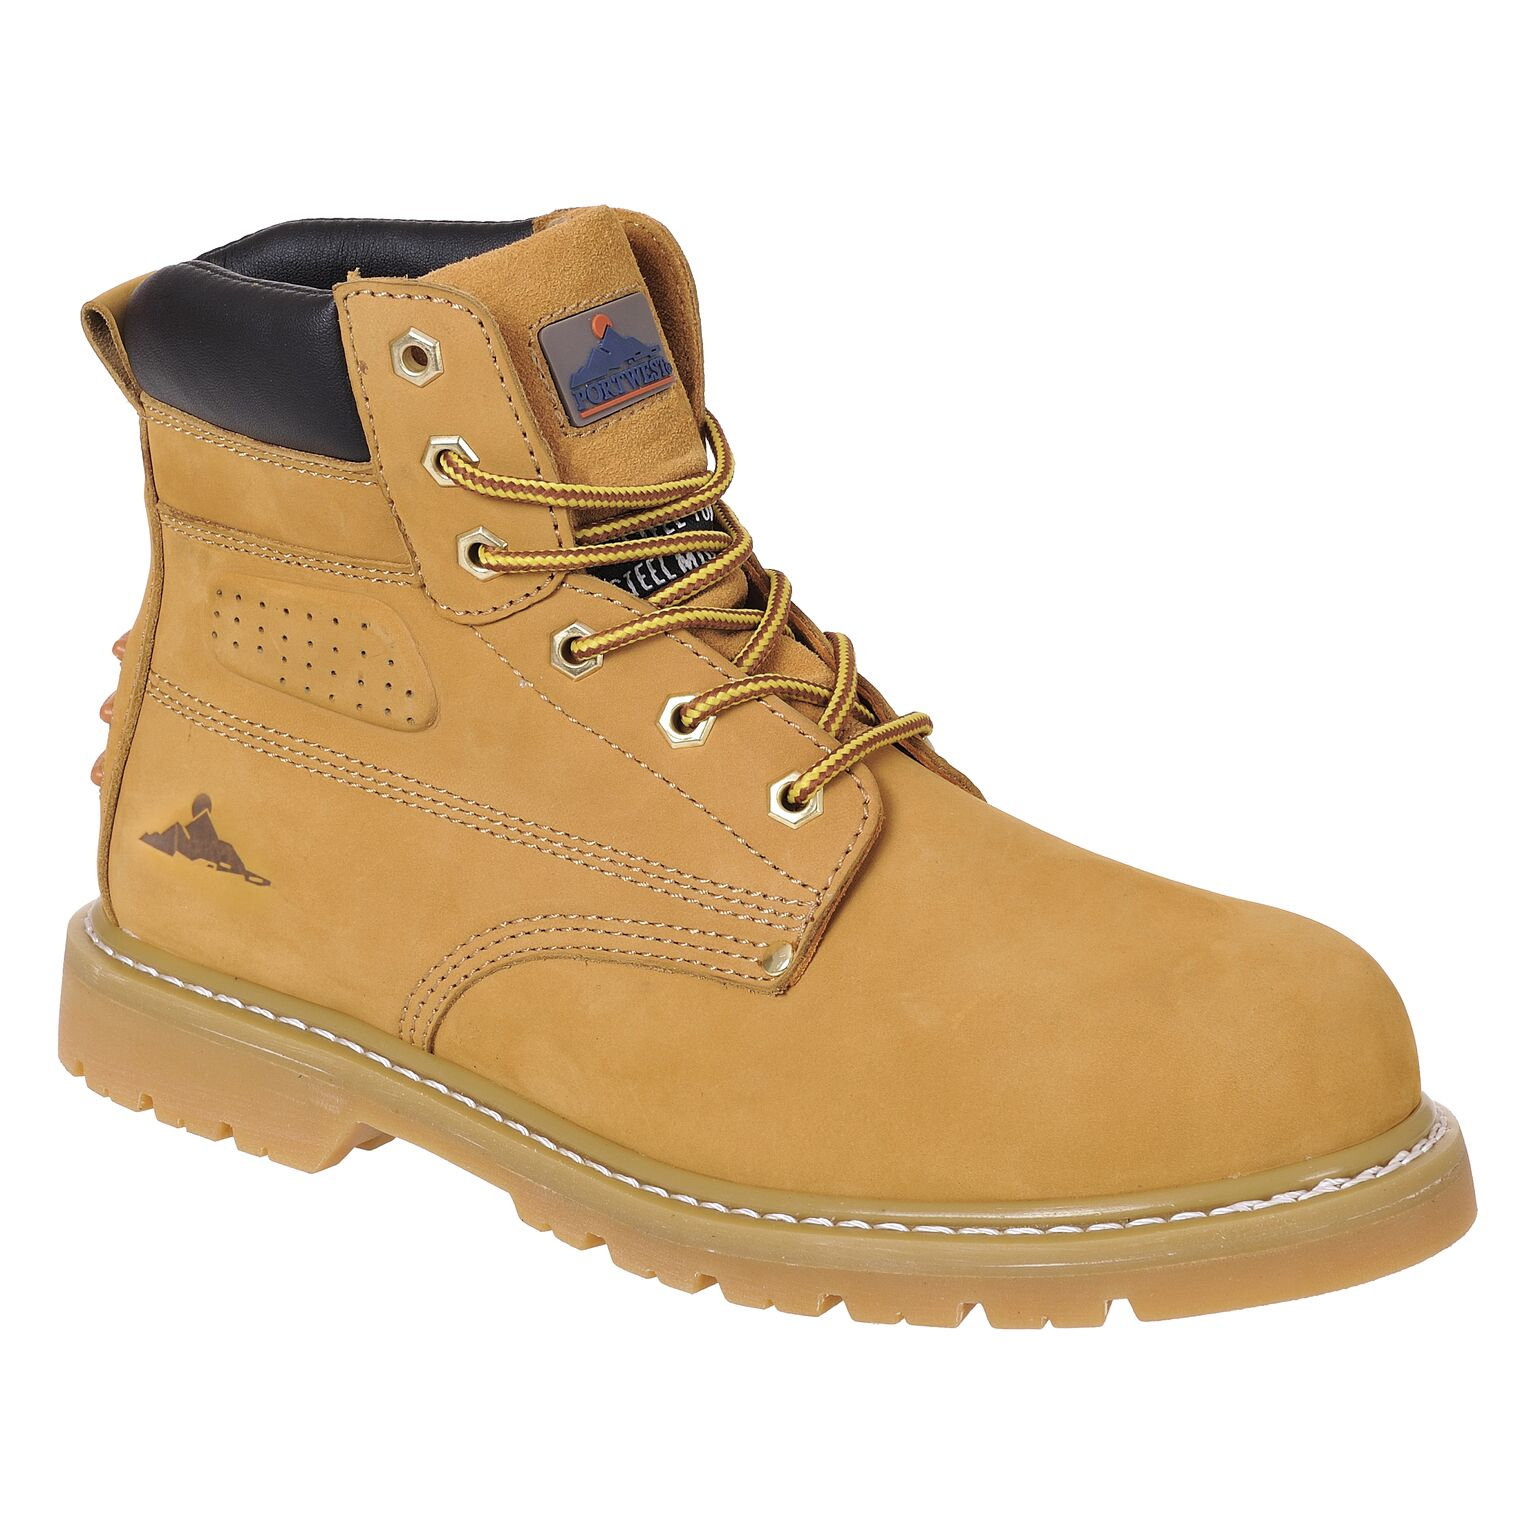 Steelite Welted Plus Safety Boot - Personal Protection ...